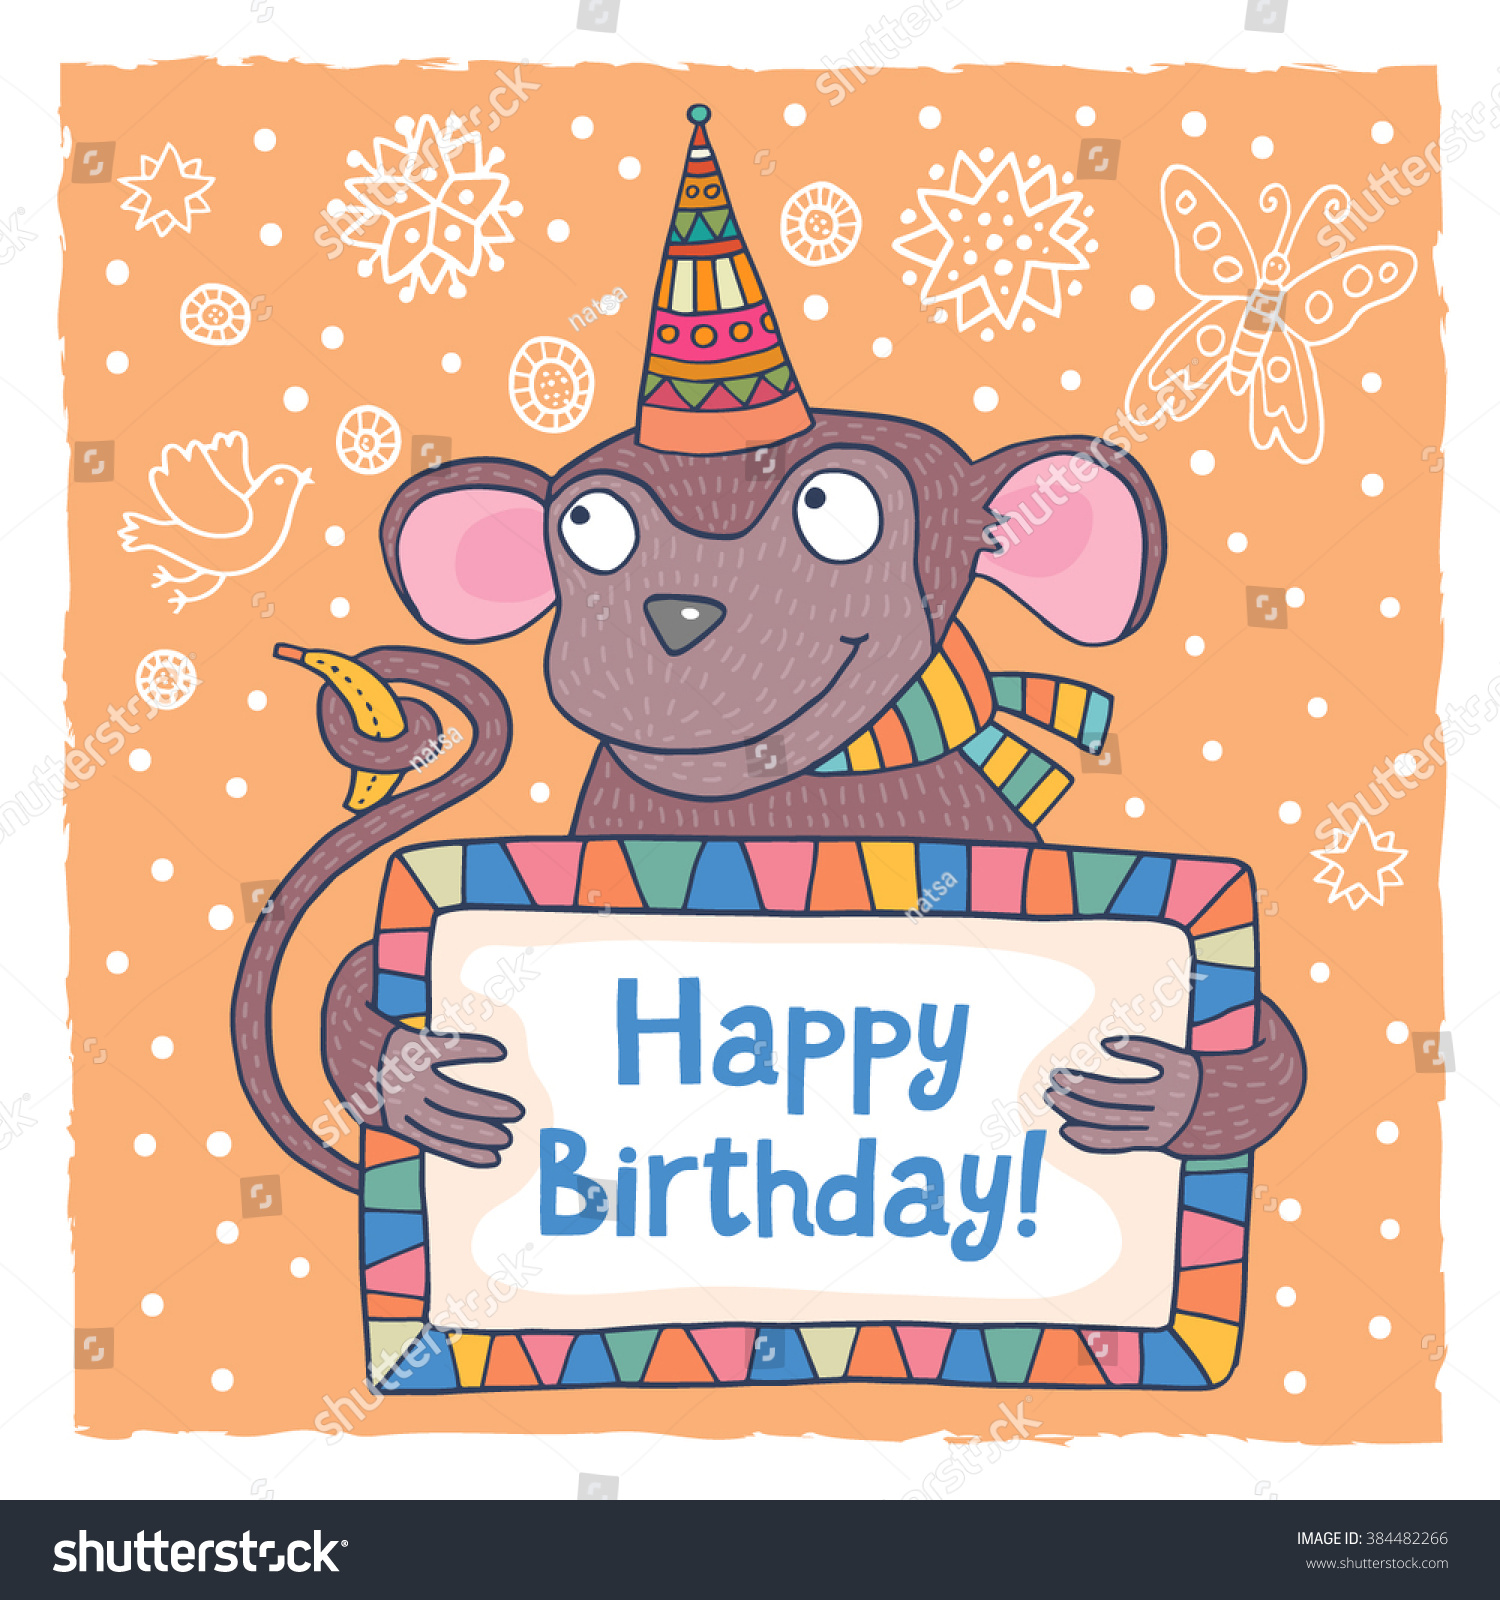 Cute Happy Birthday Greeting Card Template Stock Vector Hd Royalty